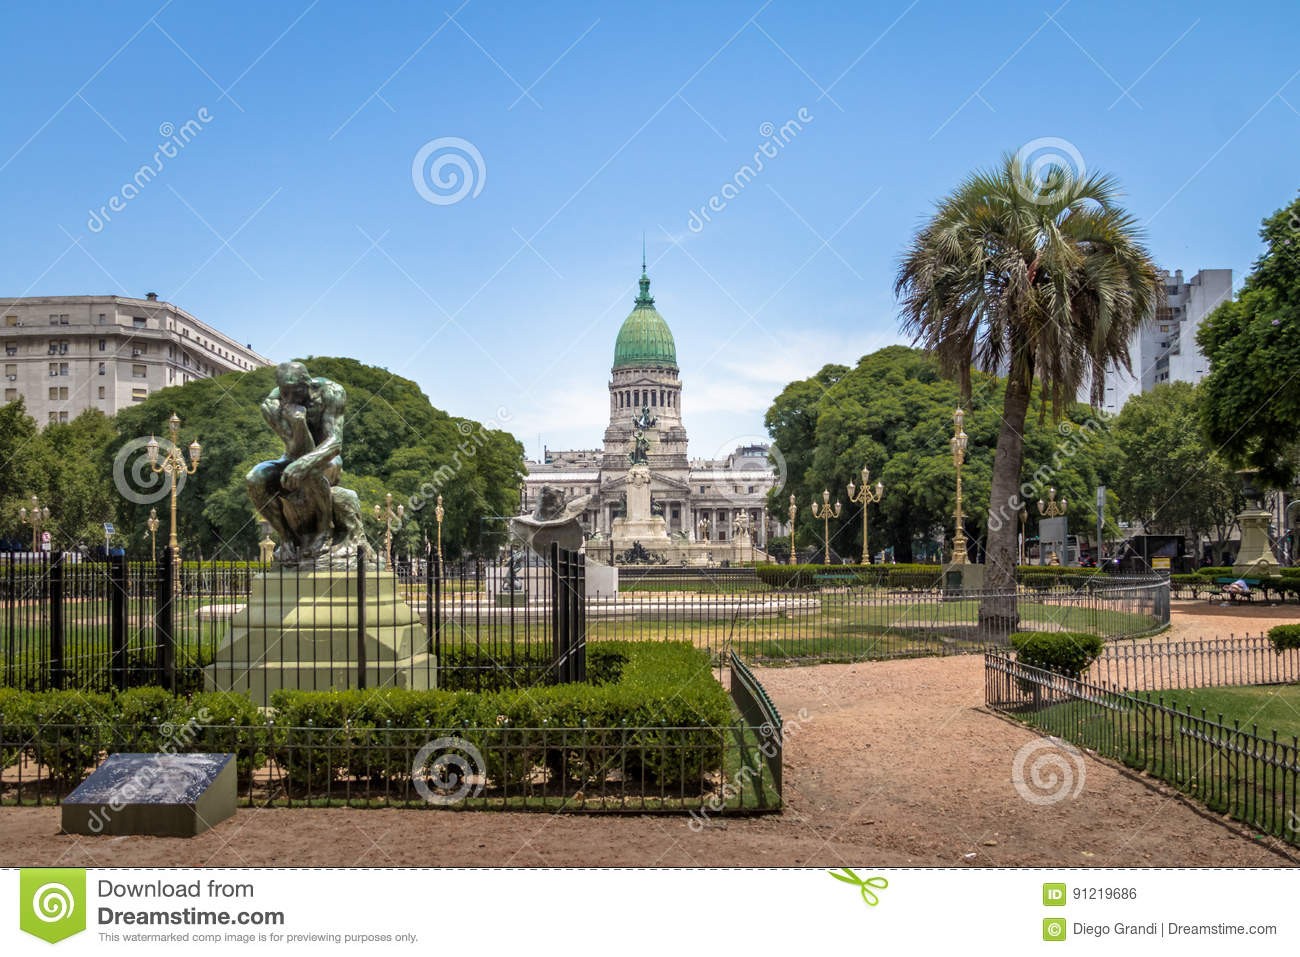 Plac Congreso i kongres narodowy - Buenos Aires, Argentyna